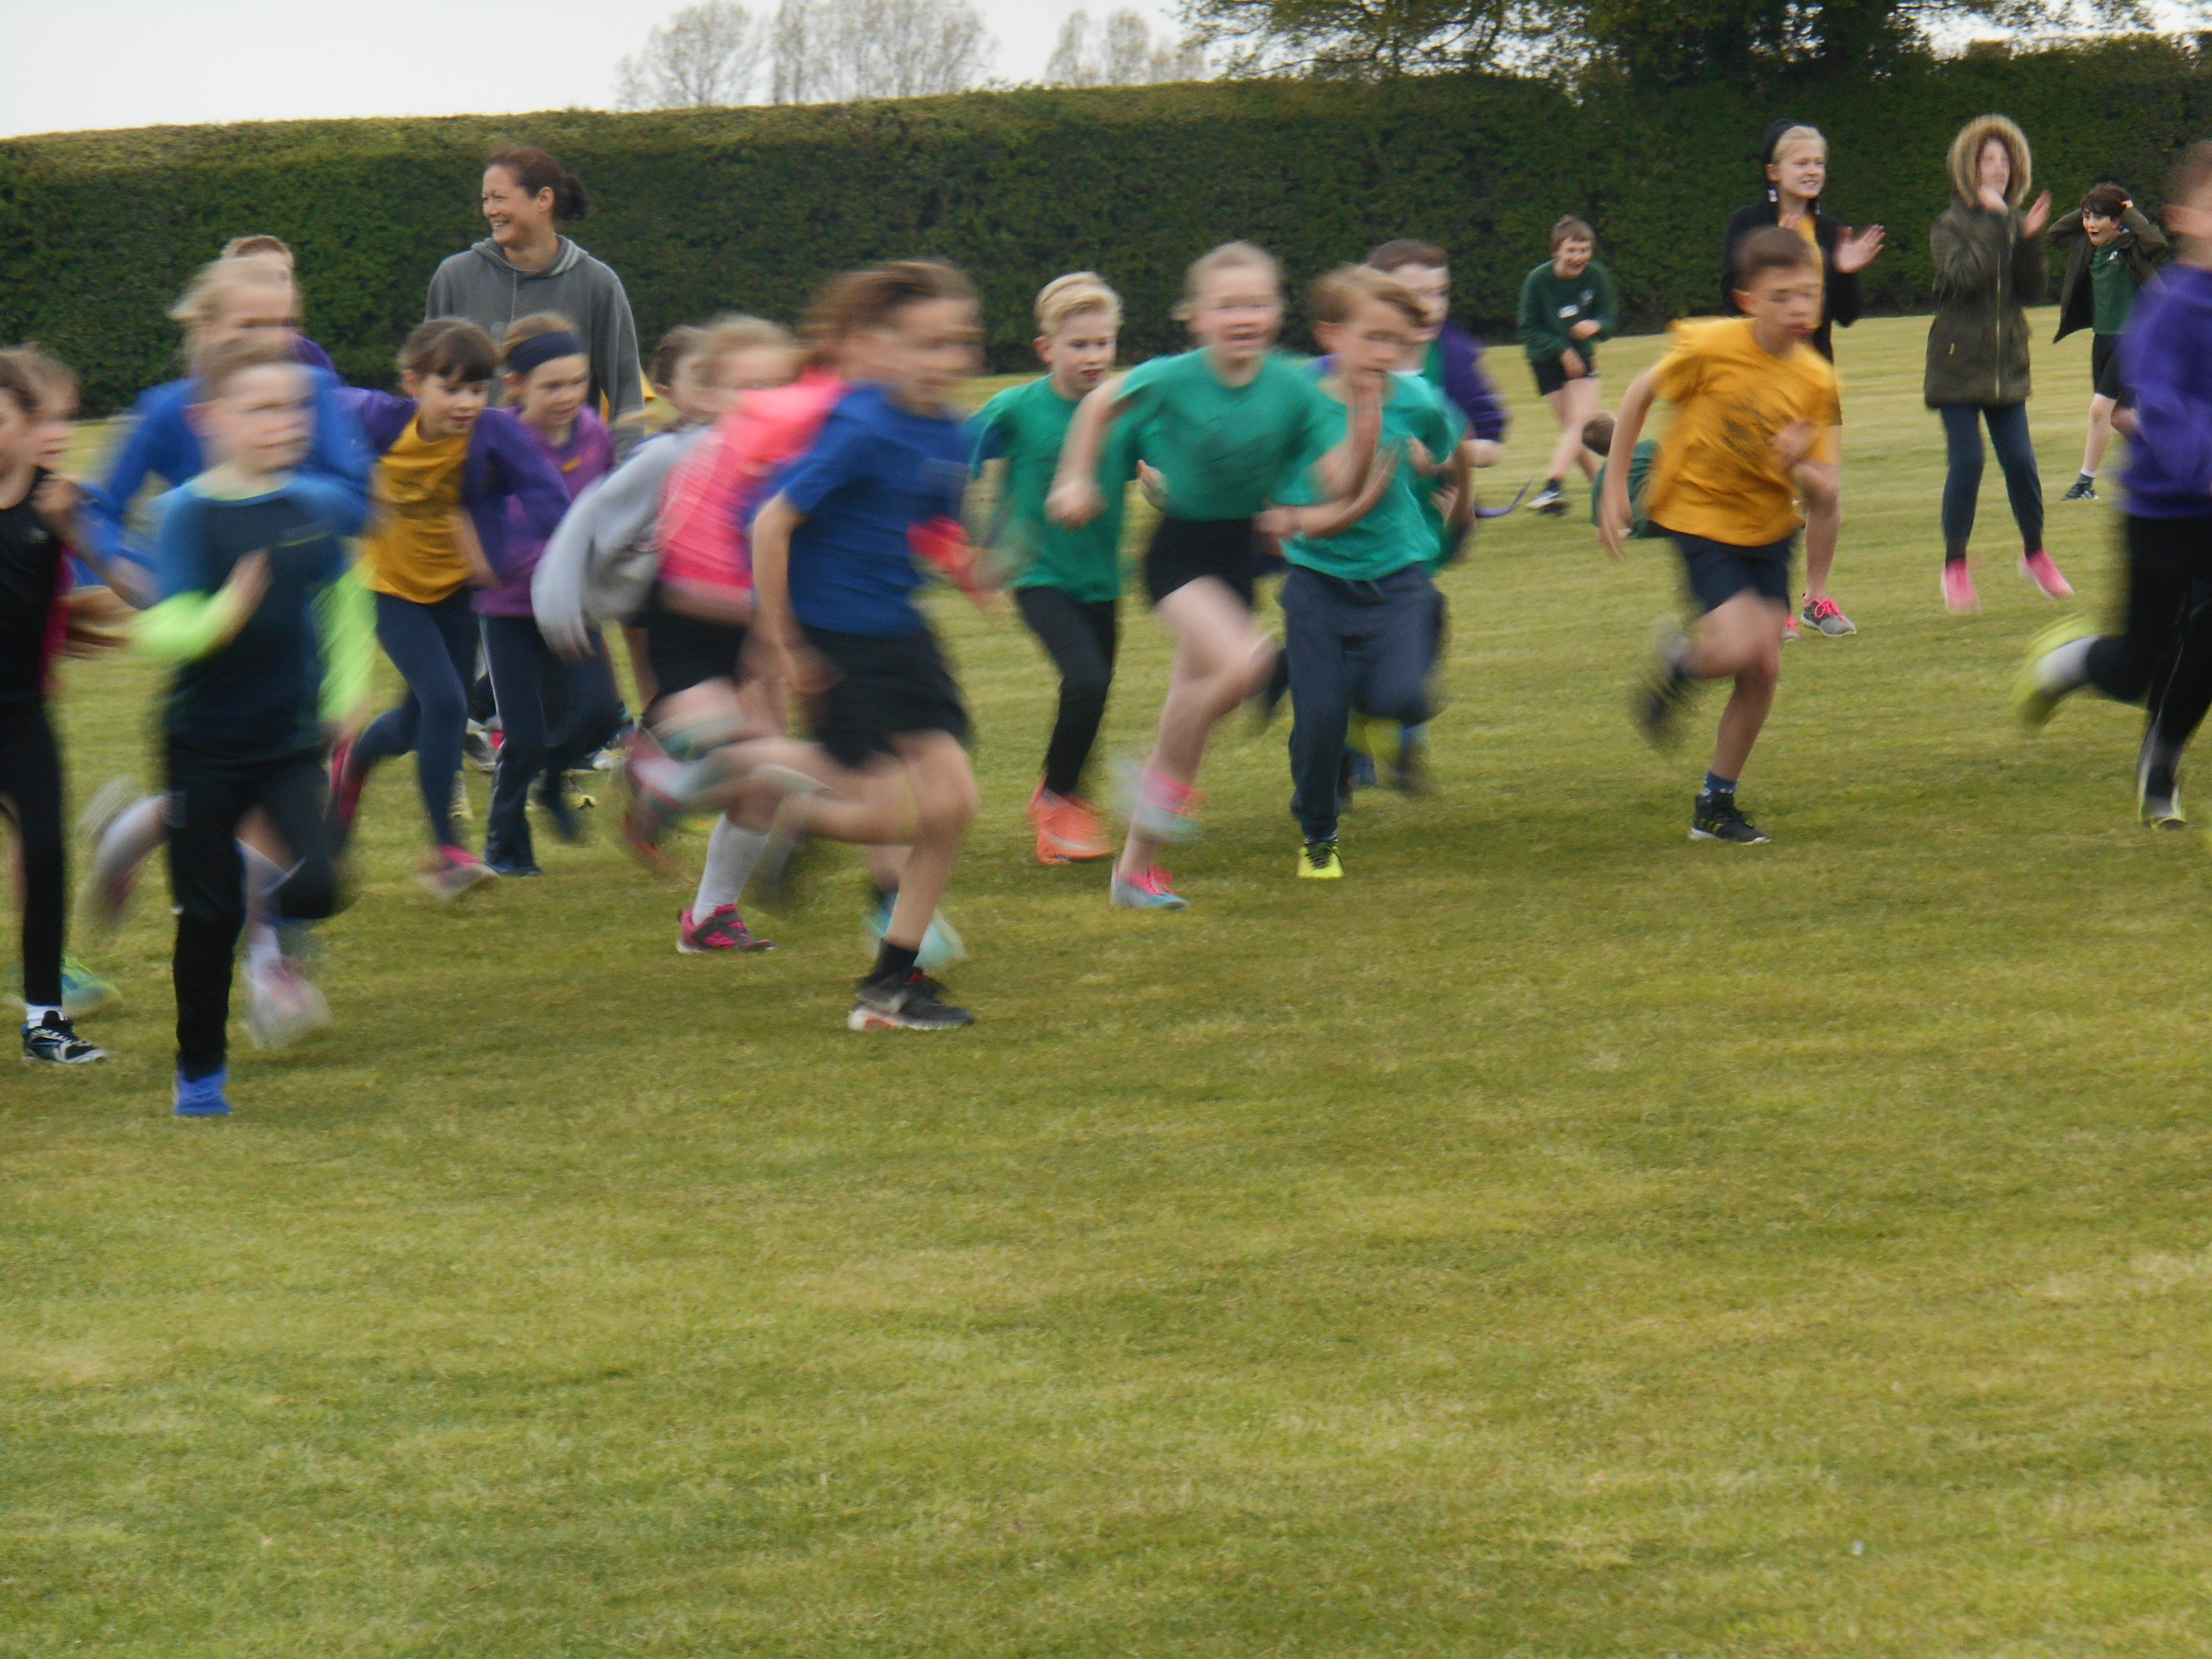 And they're off - Yr 4